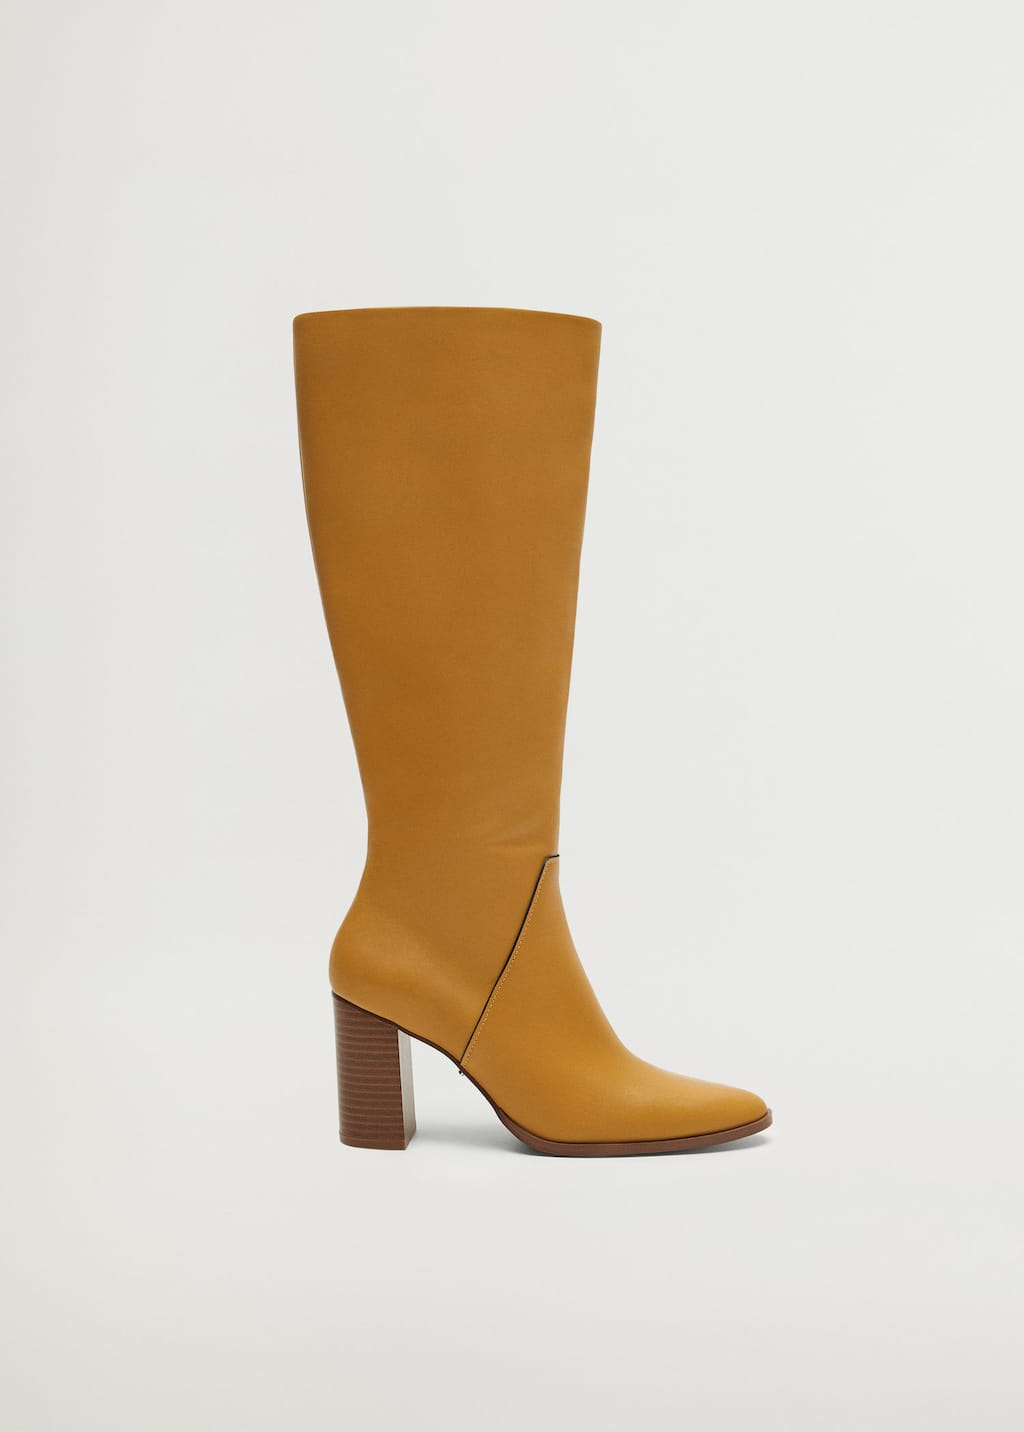 Leather high-leg boots - Article without model